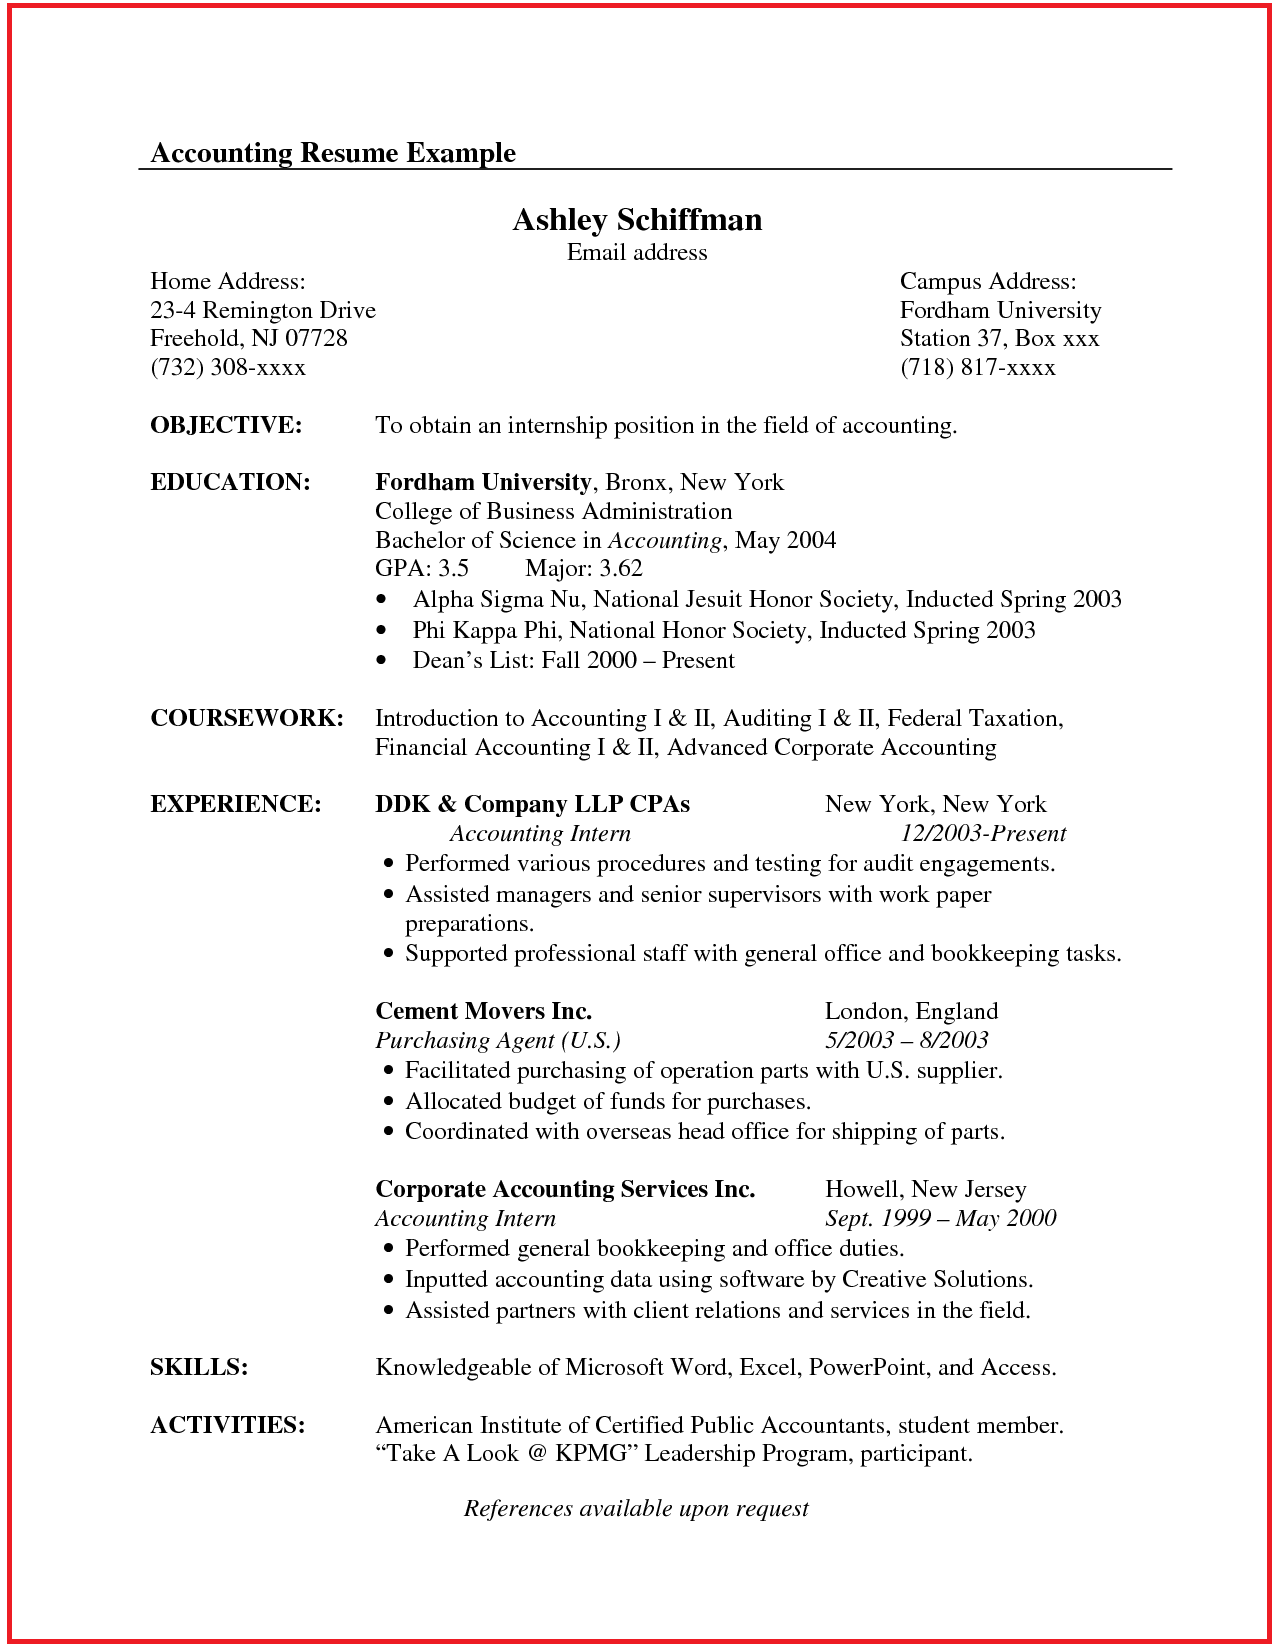 Pin by postresumeformat on Best Latest resume | Pinterest | Resume ...